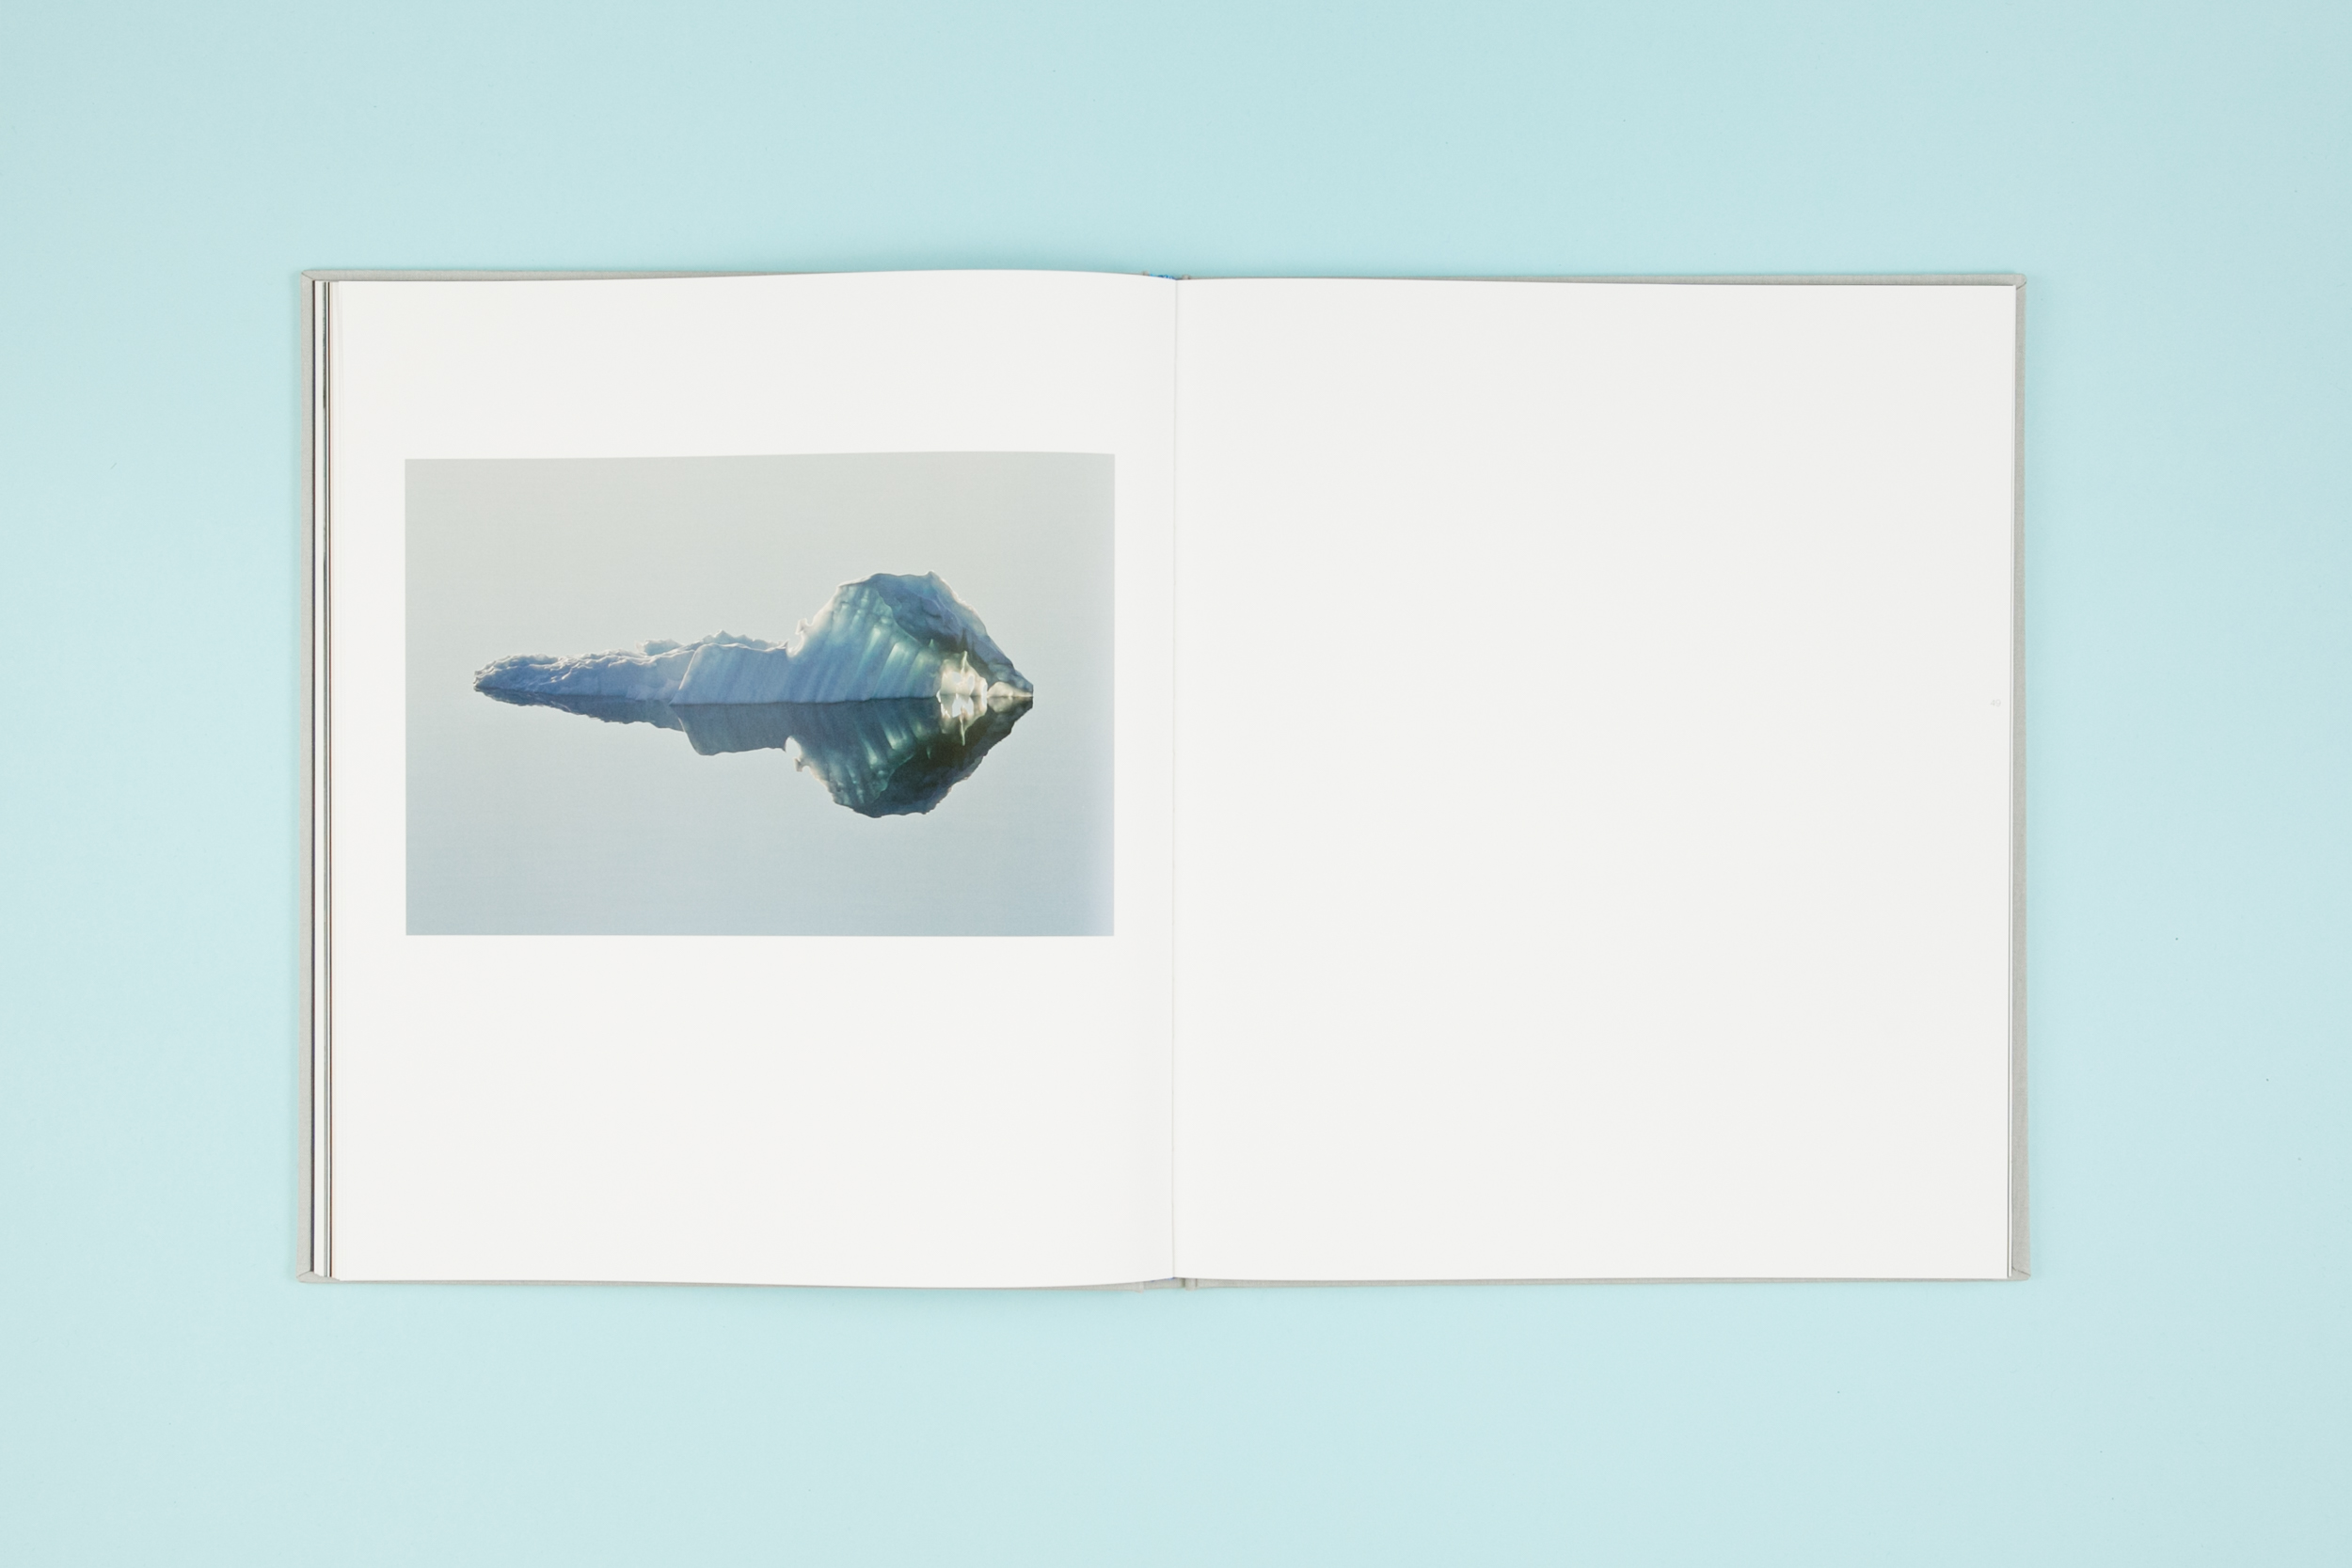 Book spread from self-published photobook 'Out of Thin Air' featuring photography by Daragh Muldowney and design by Read That Image.